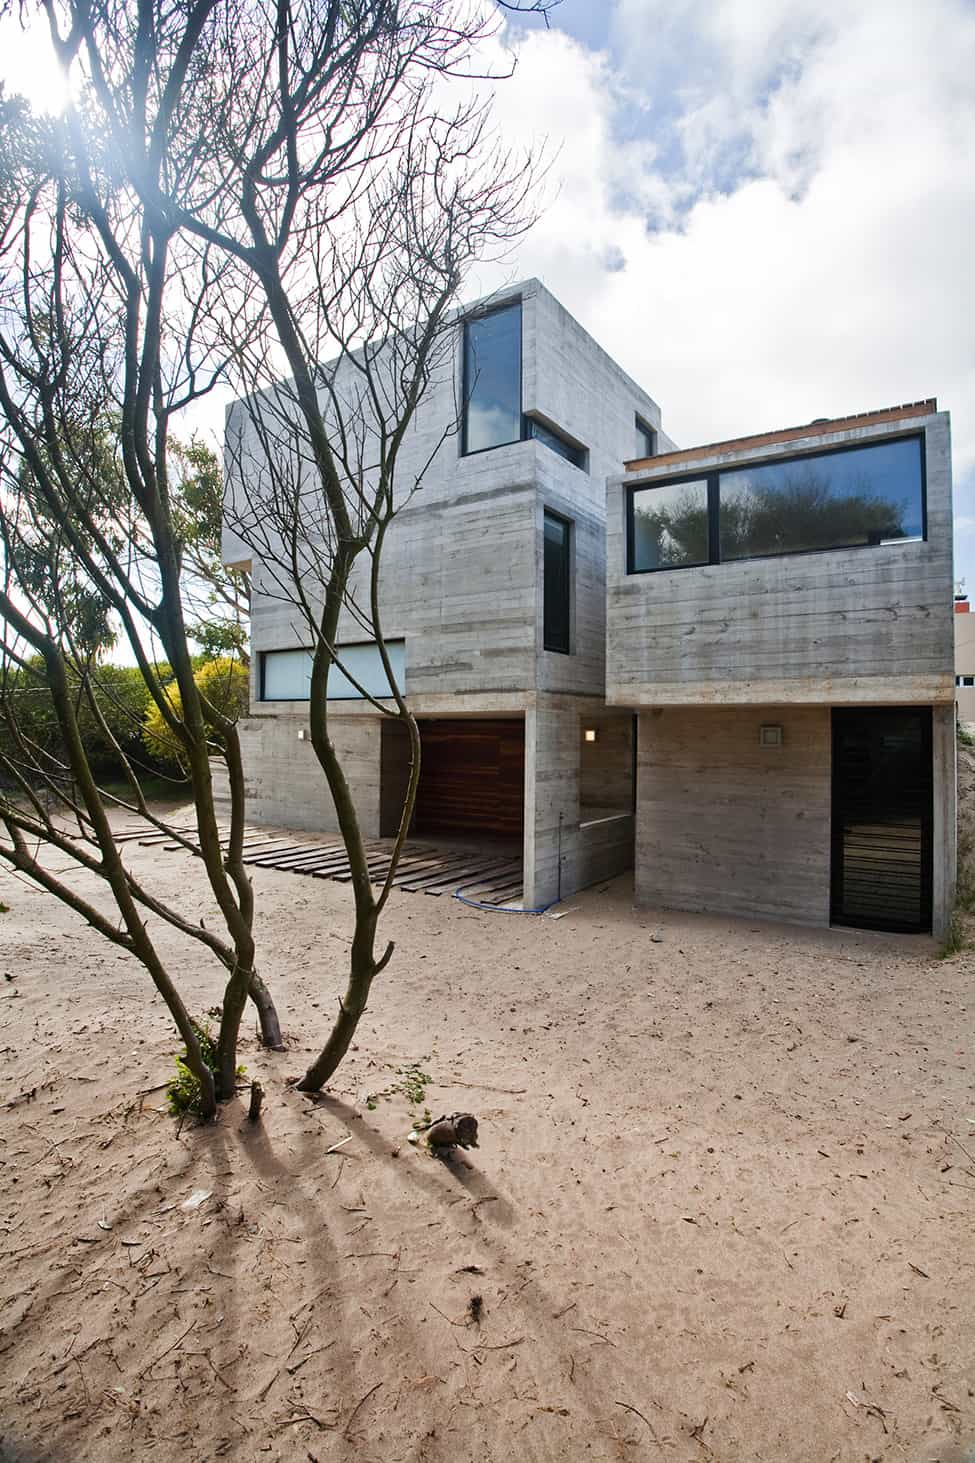 Industrial Aesthetic Values in a Beach Home by BAK Architects (24)